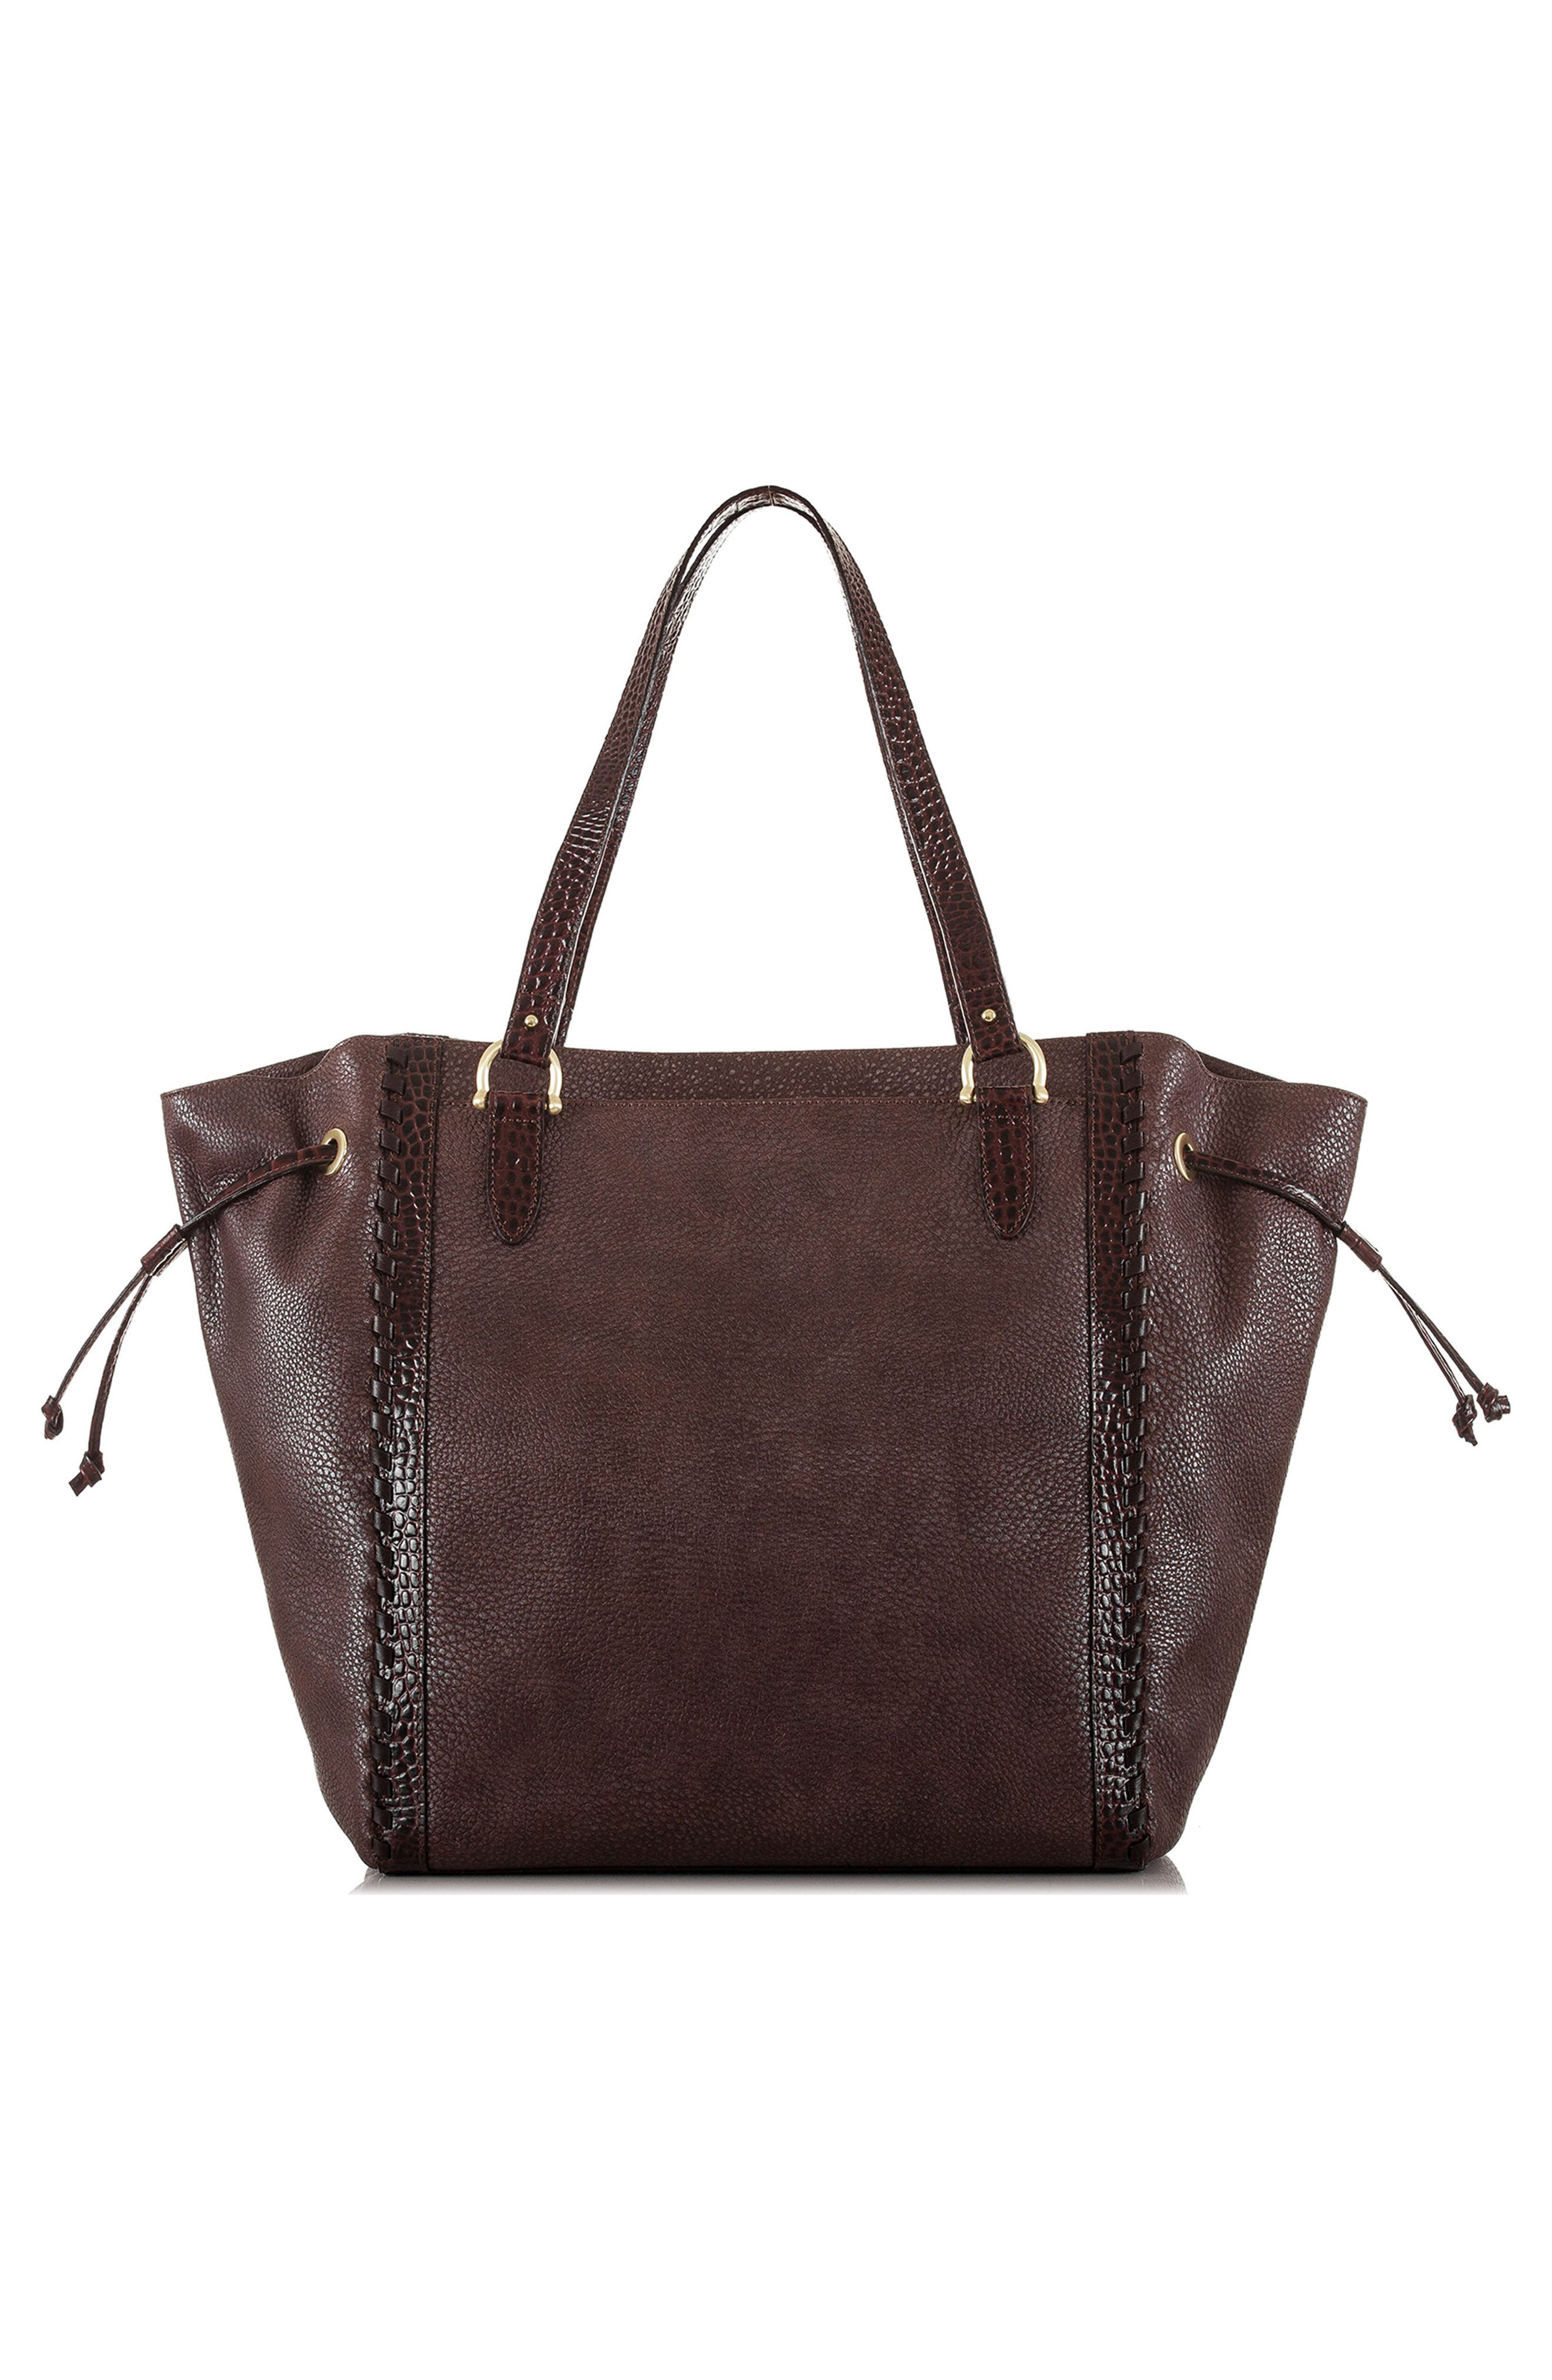 Southcoast Cheyenne Leather Tote,                             Alternate thumbnail 2, color,                             200